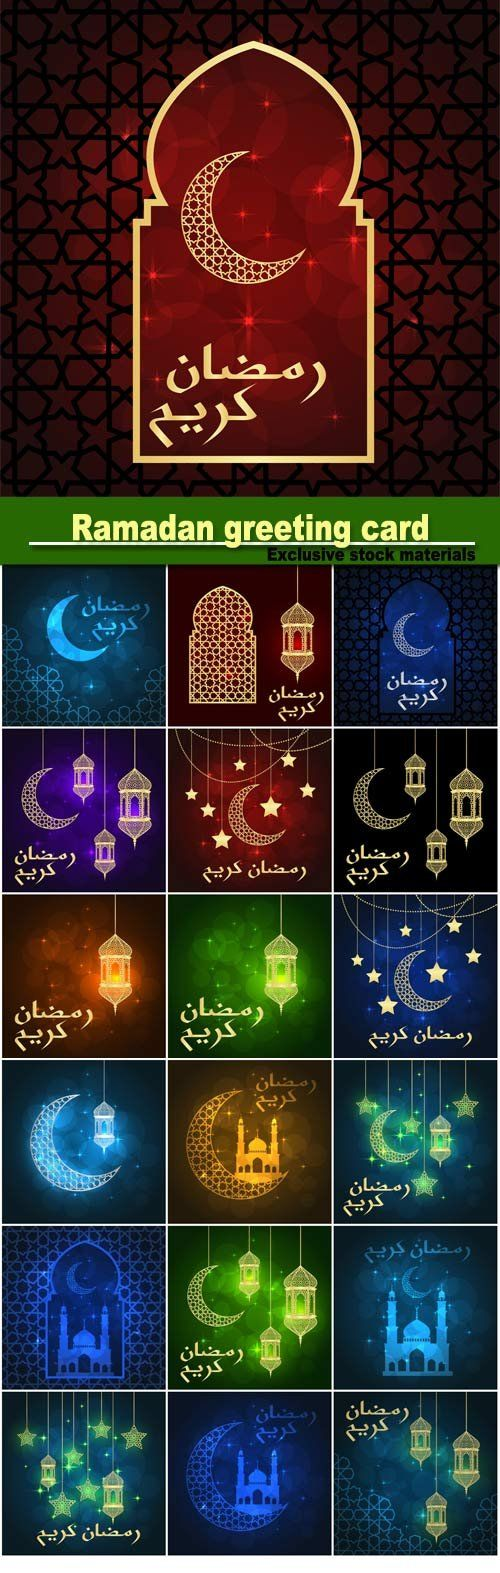 Ramadan greeting card vector backgrounds http://greatislamicquotes.com/ramadan-quotes-greetings-wishes/